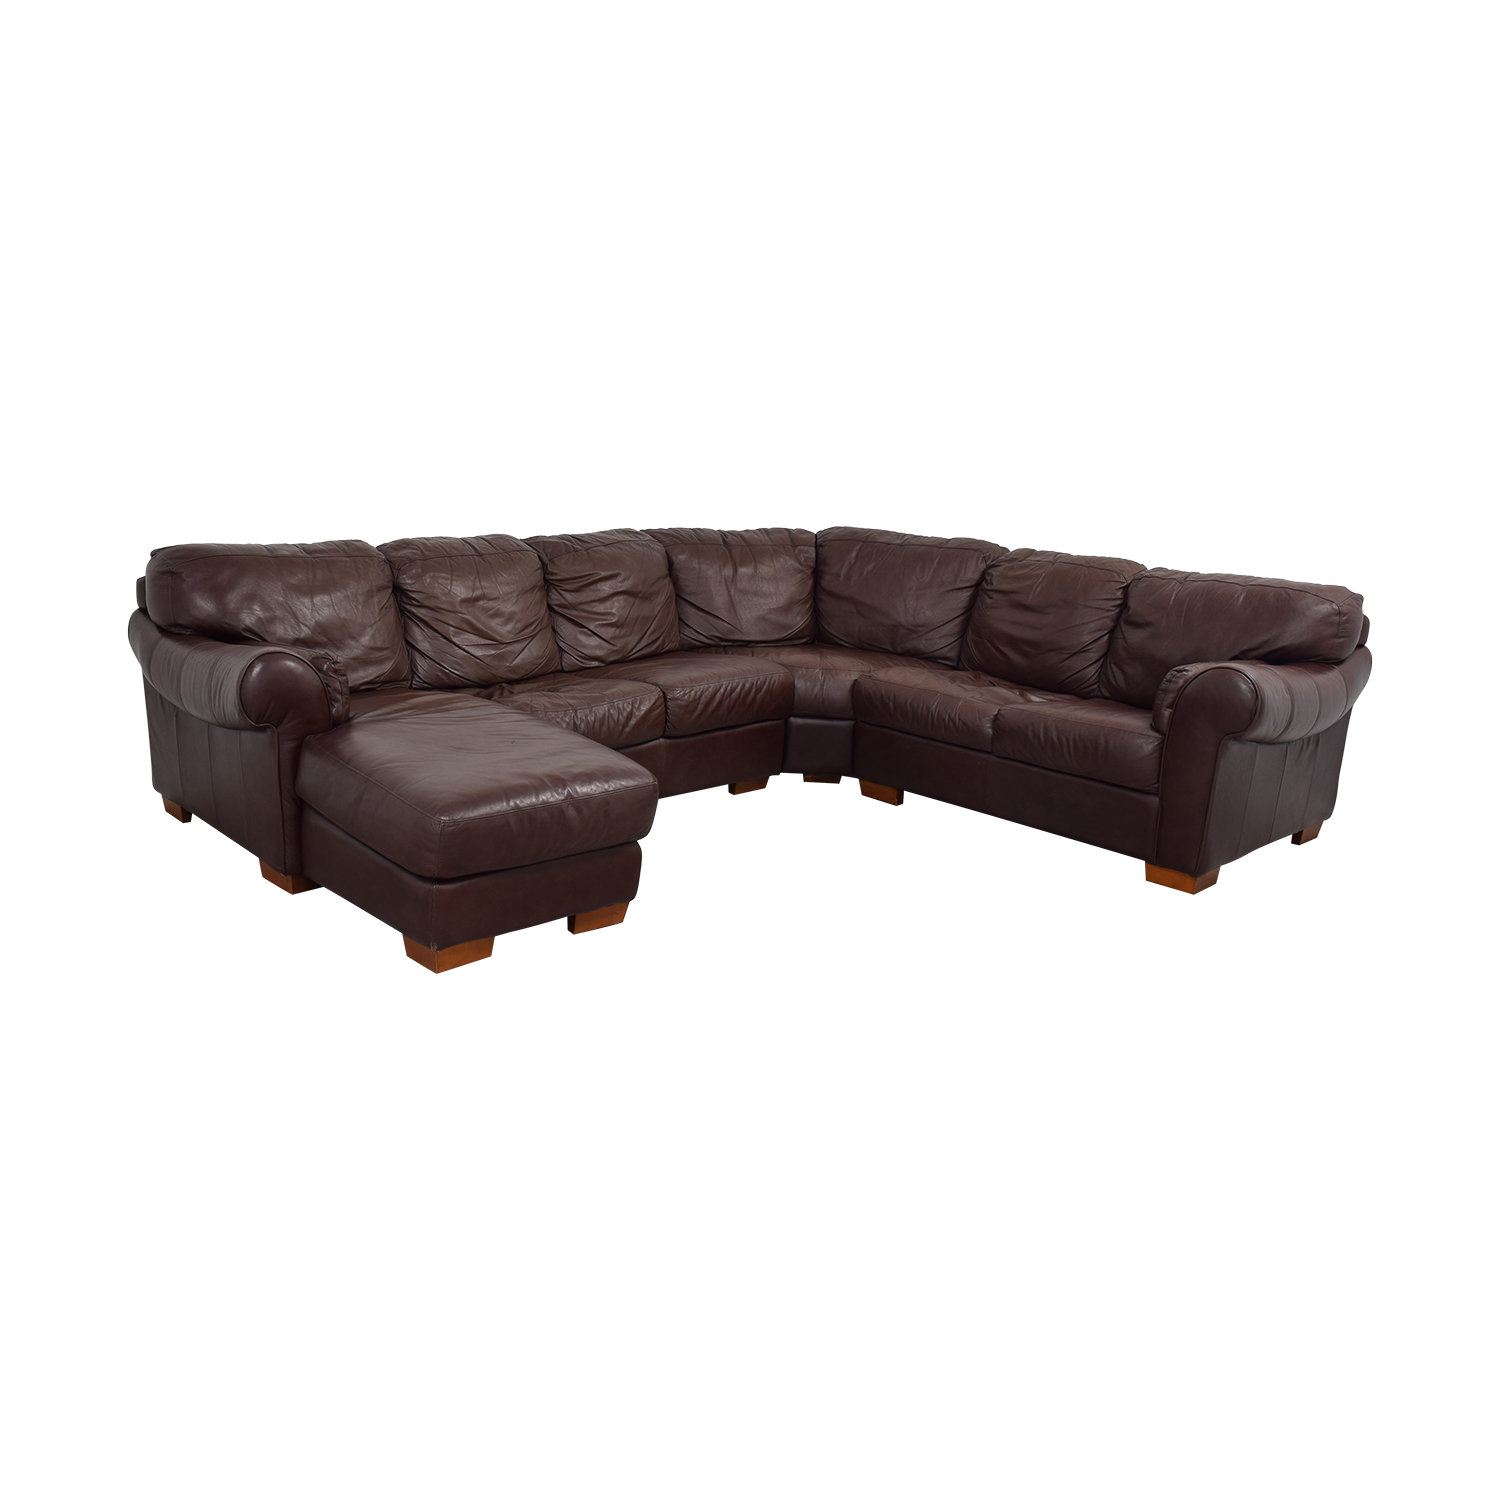 89 off chateau d 39 ax chateau d 39 ax divani brown leather l for Divani chateau d ax offerte